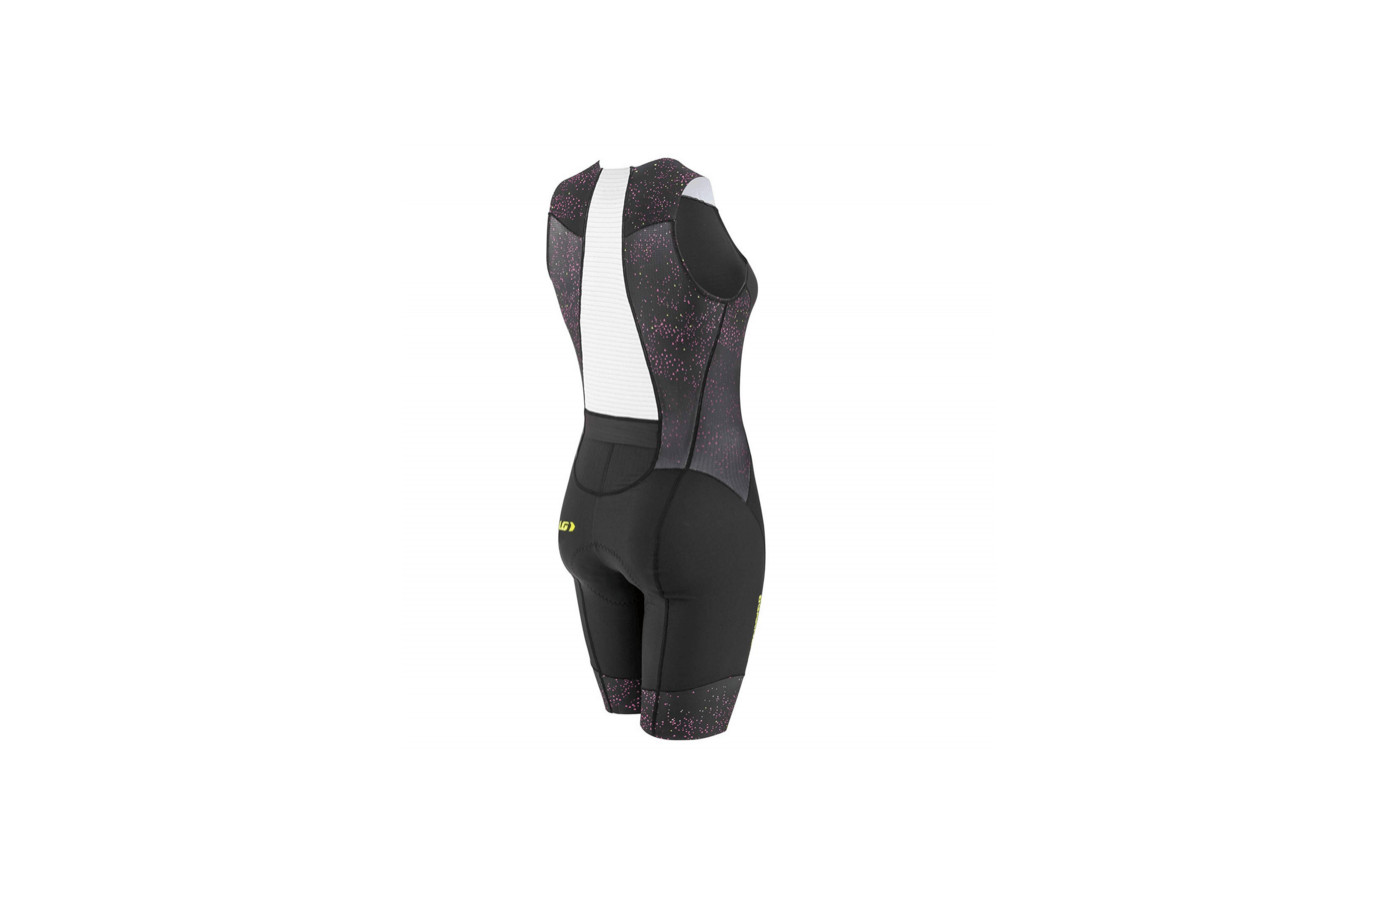 The Pro Carbon's fabric enhances blood circulation and recovery time.